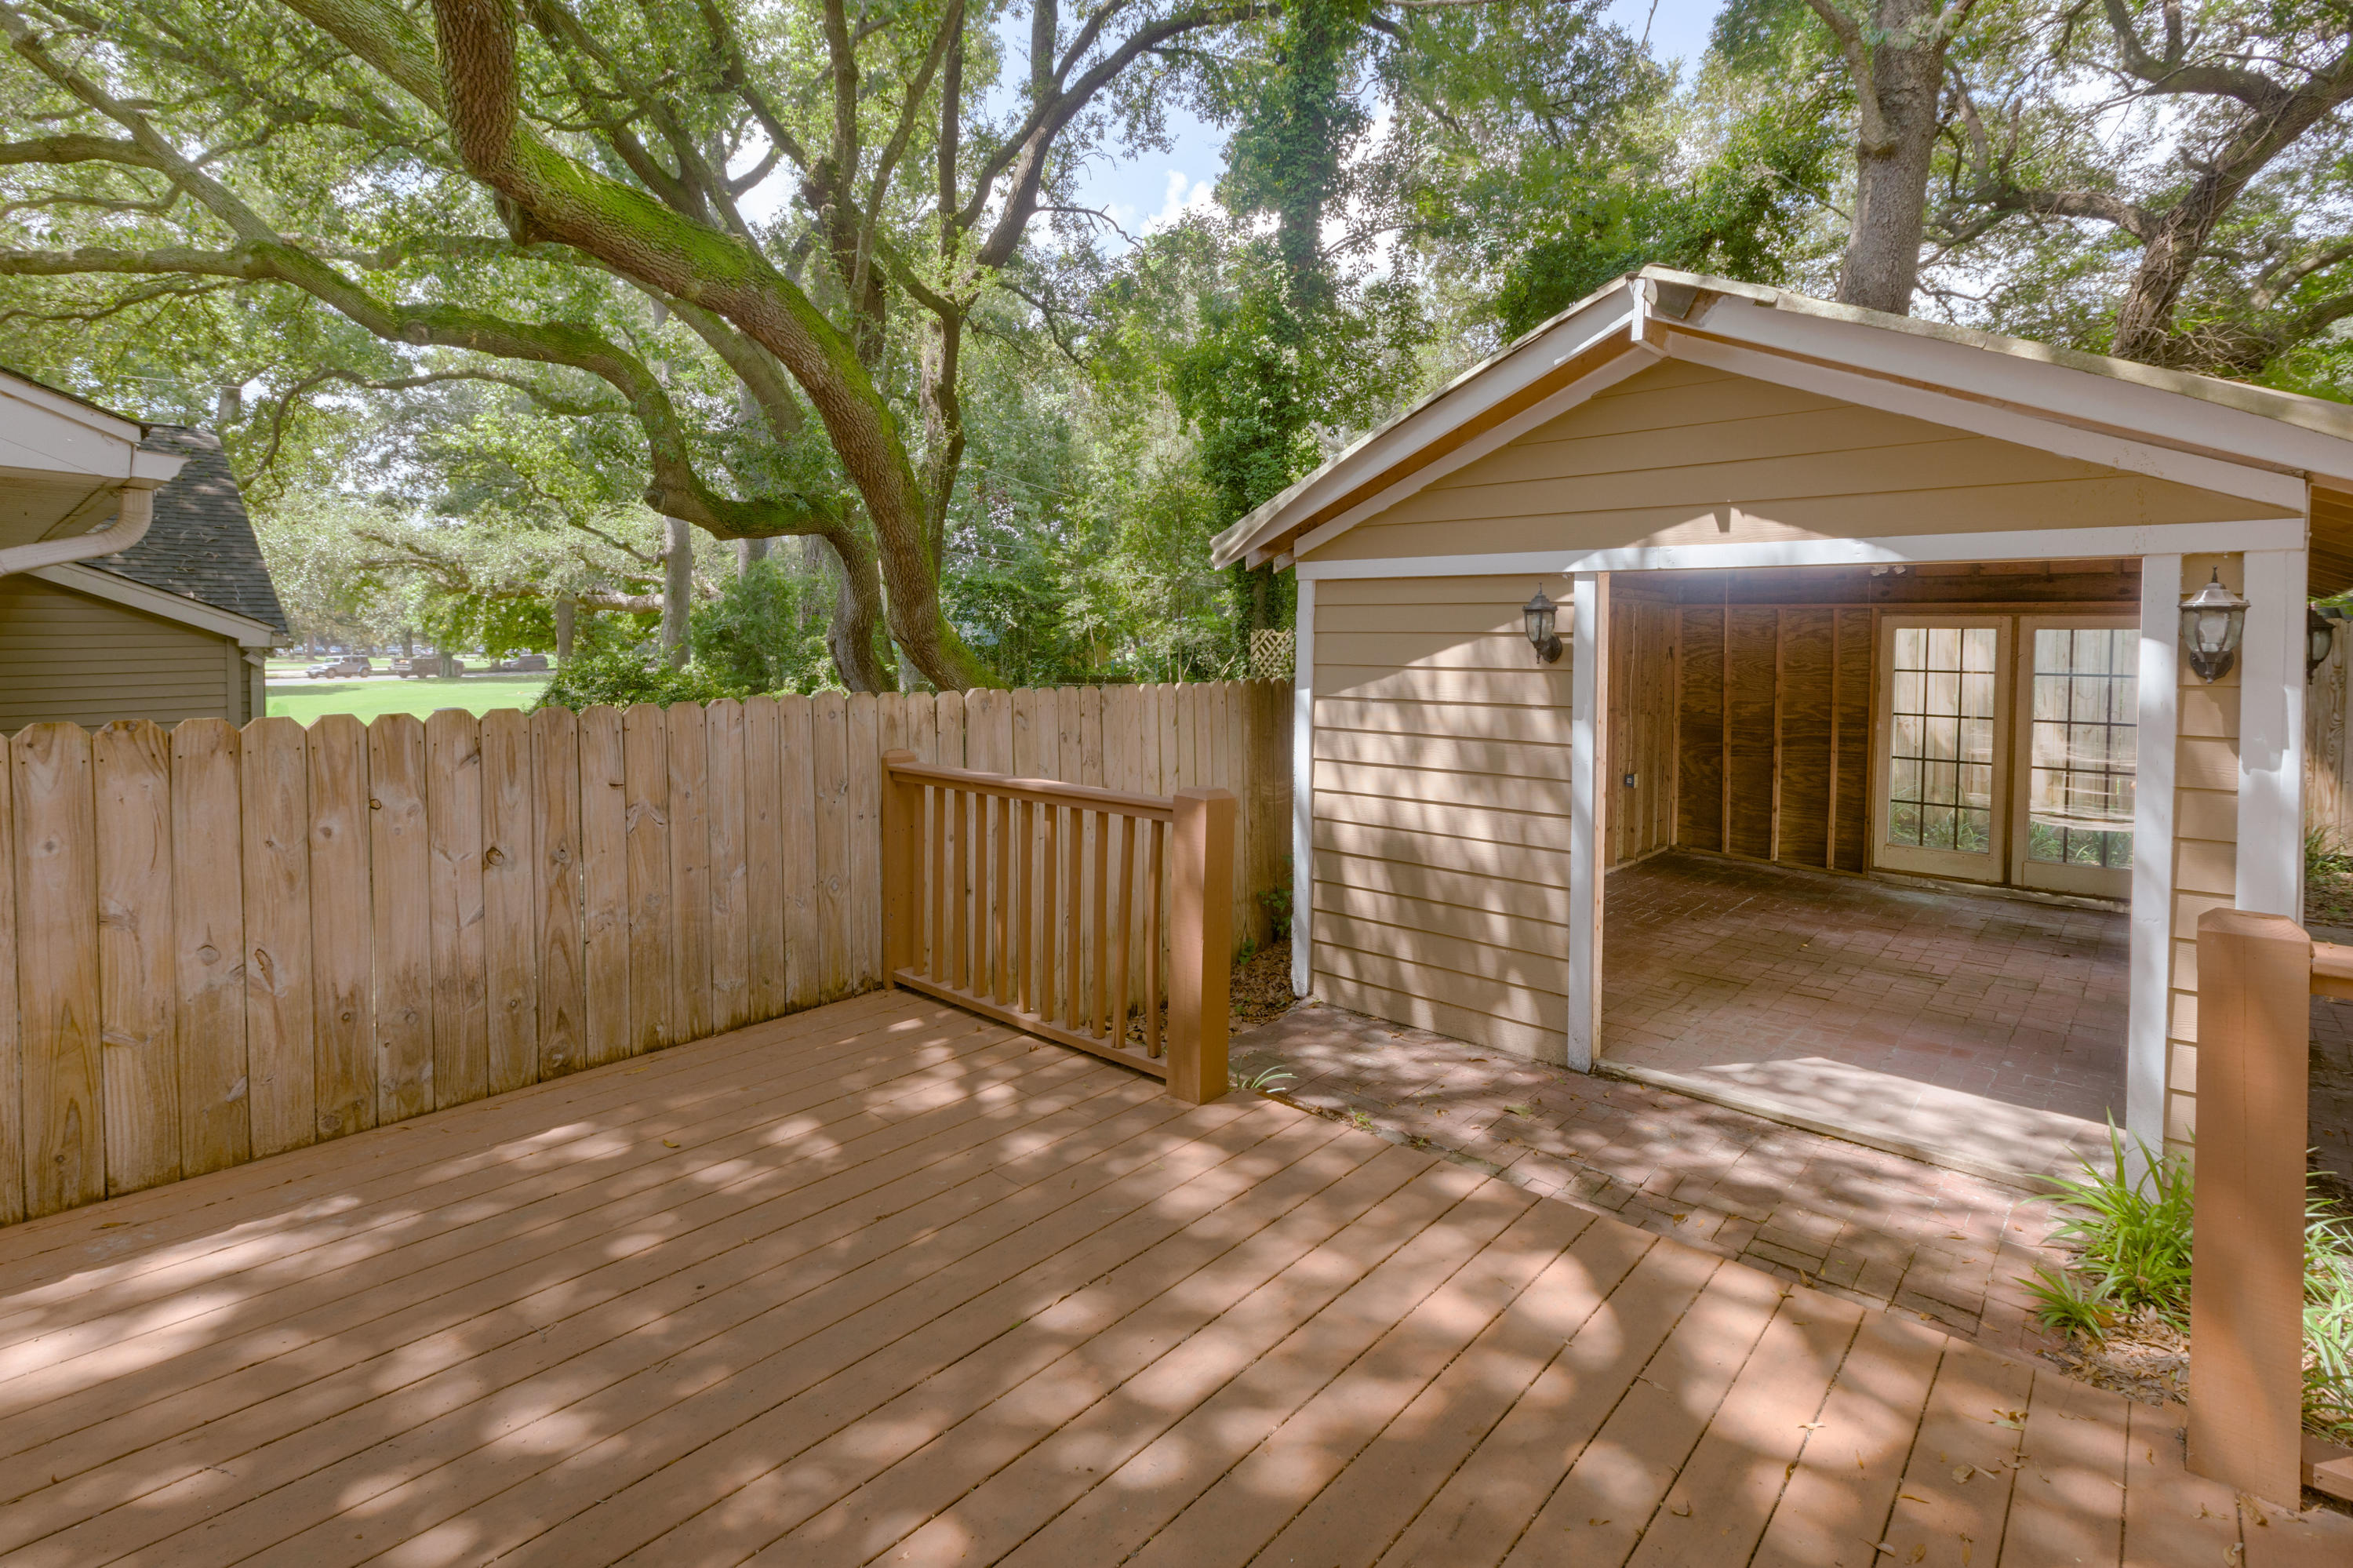 Riverland Terrace Homes For Sale - 2115 Welch, Charleston, SC - 33